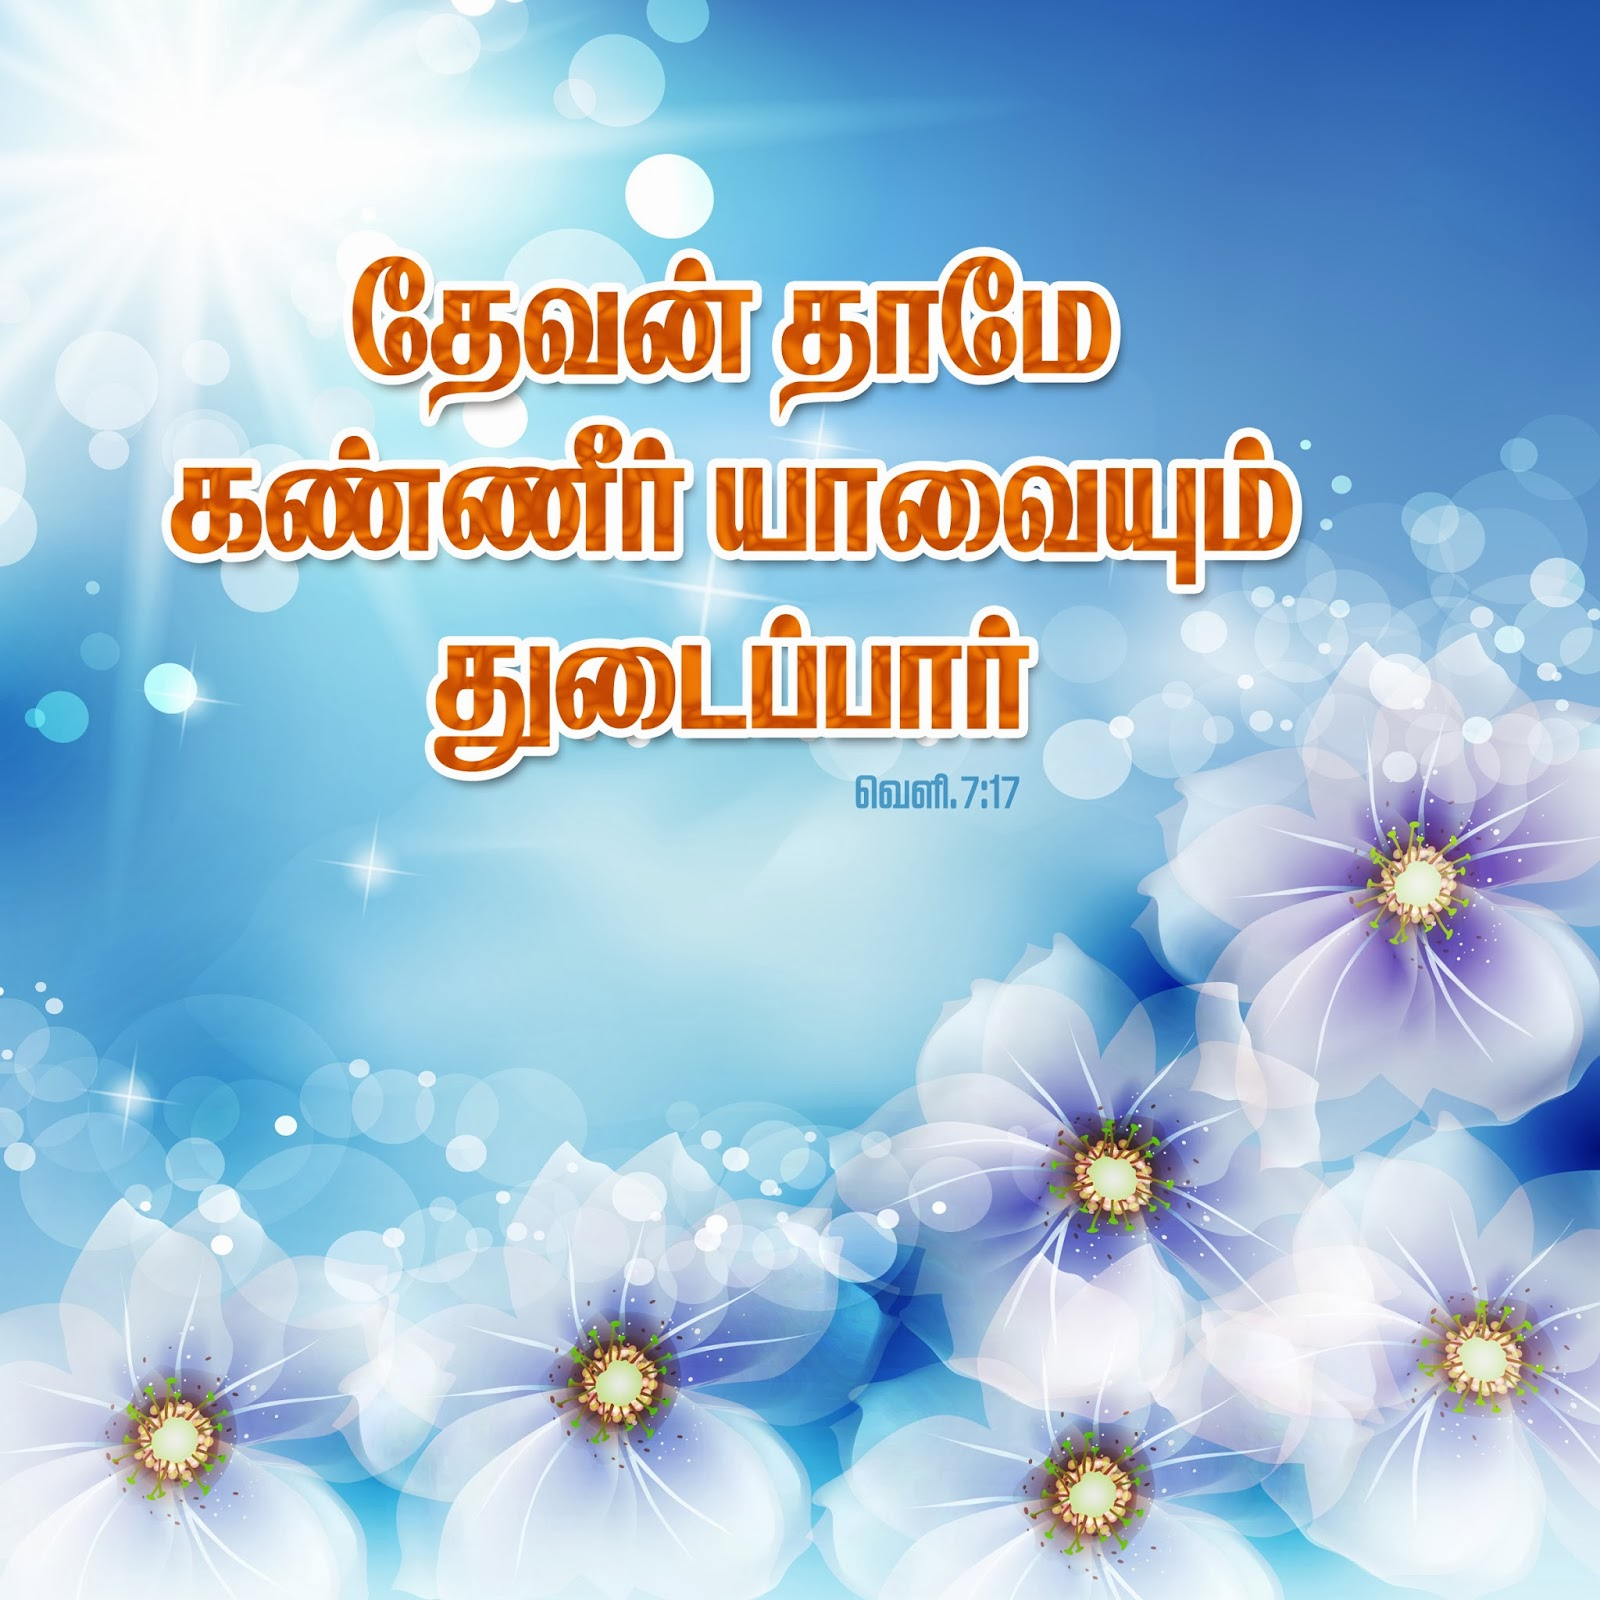 Christmas Bible Verses In Tamil All Ideas About Christmas And